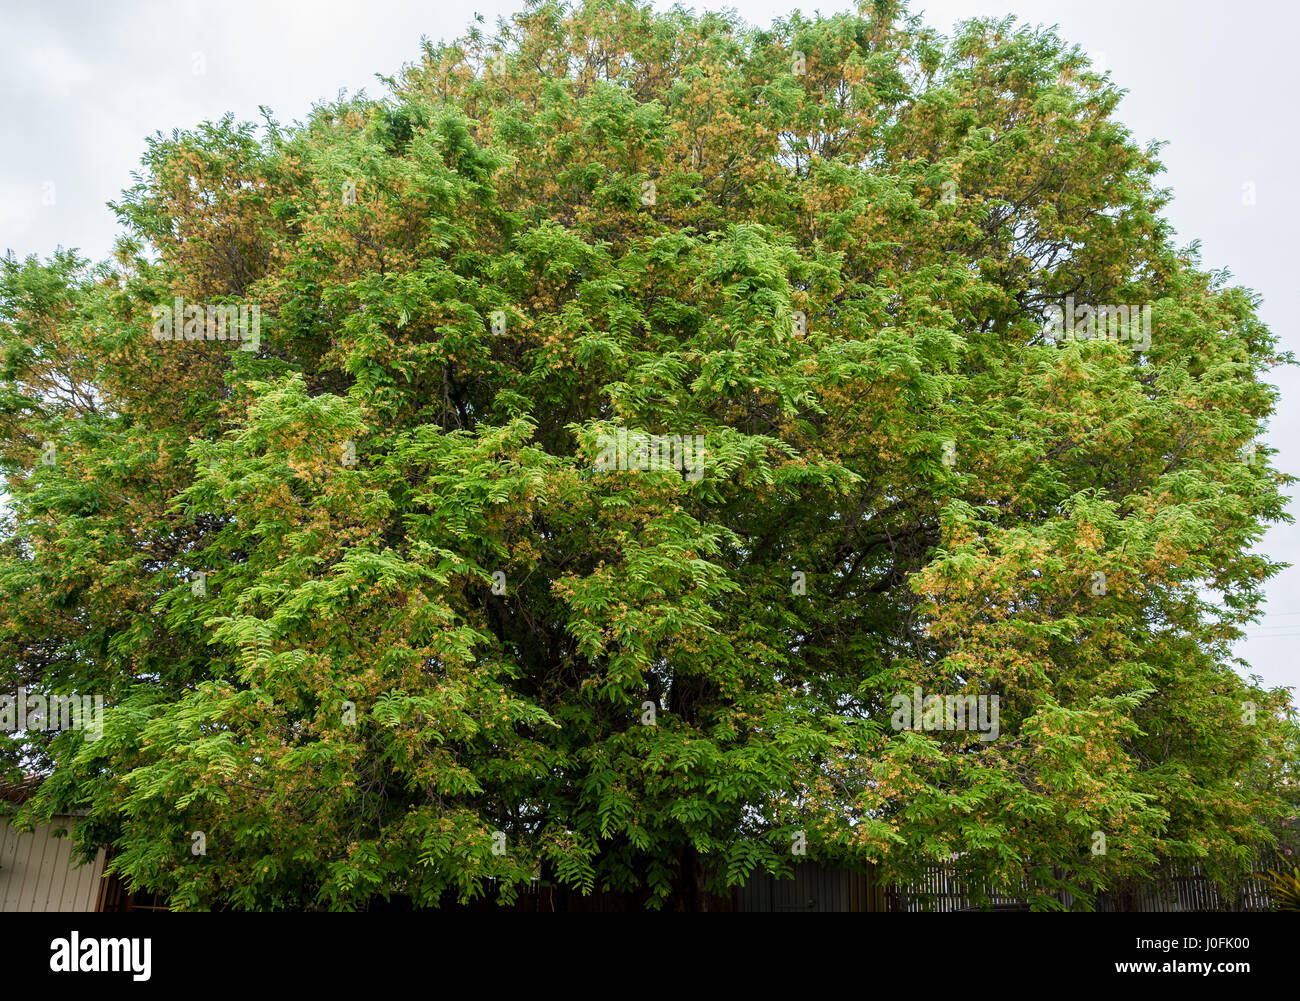 Large very old flowering tamarind tree, Tamarindus indica ...